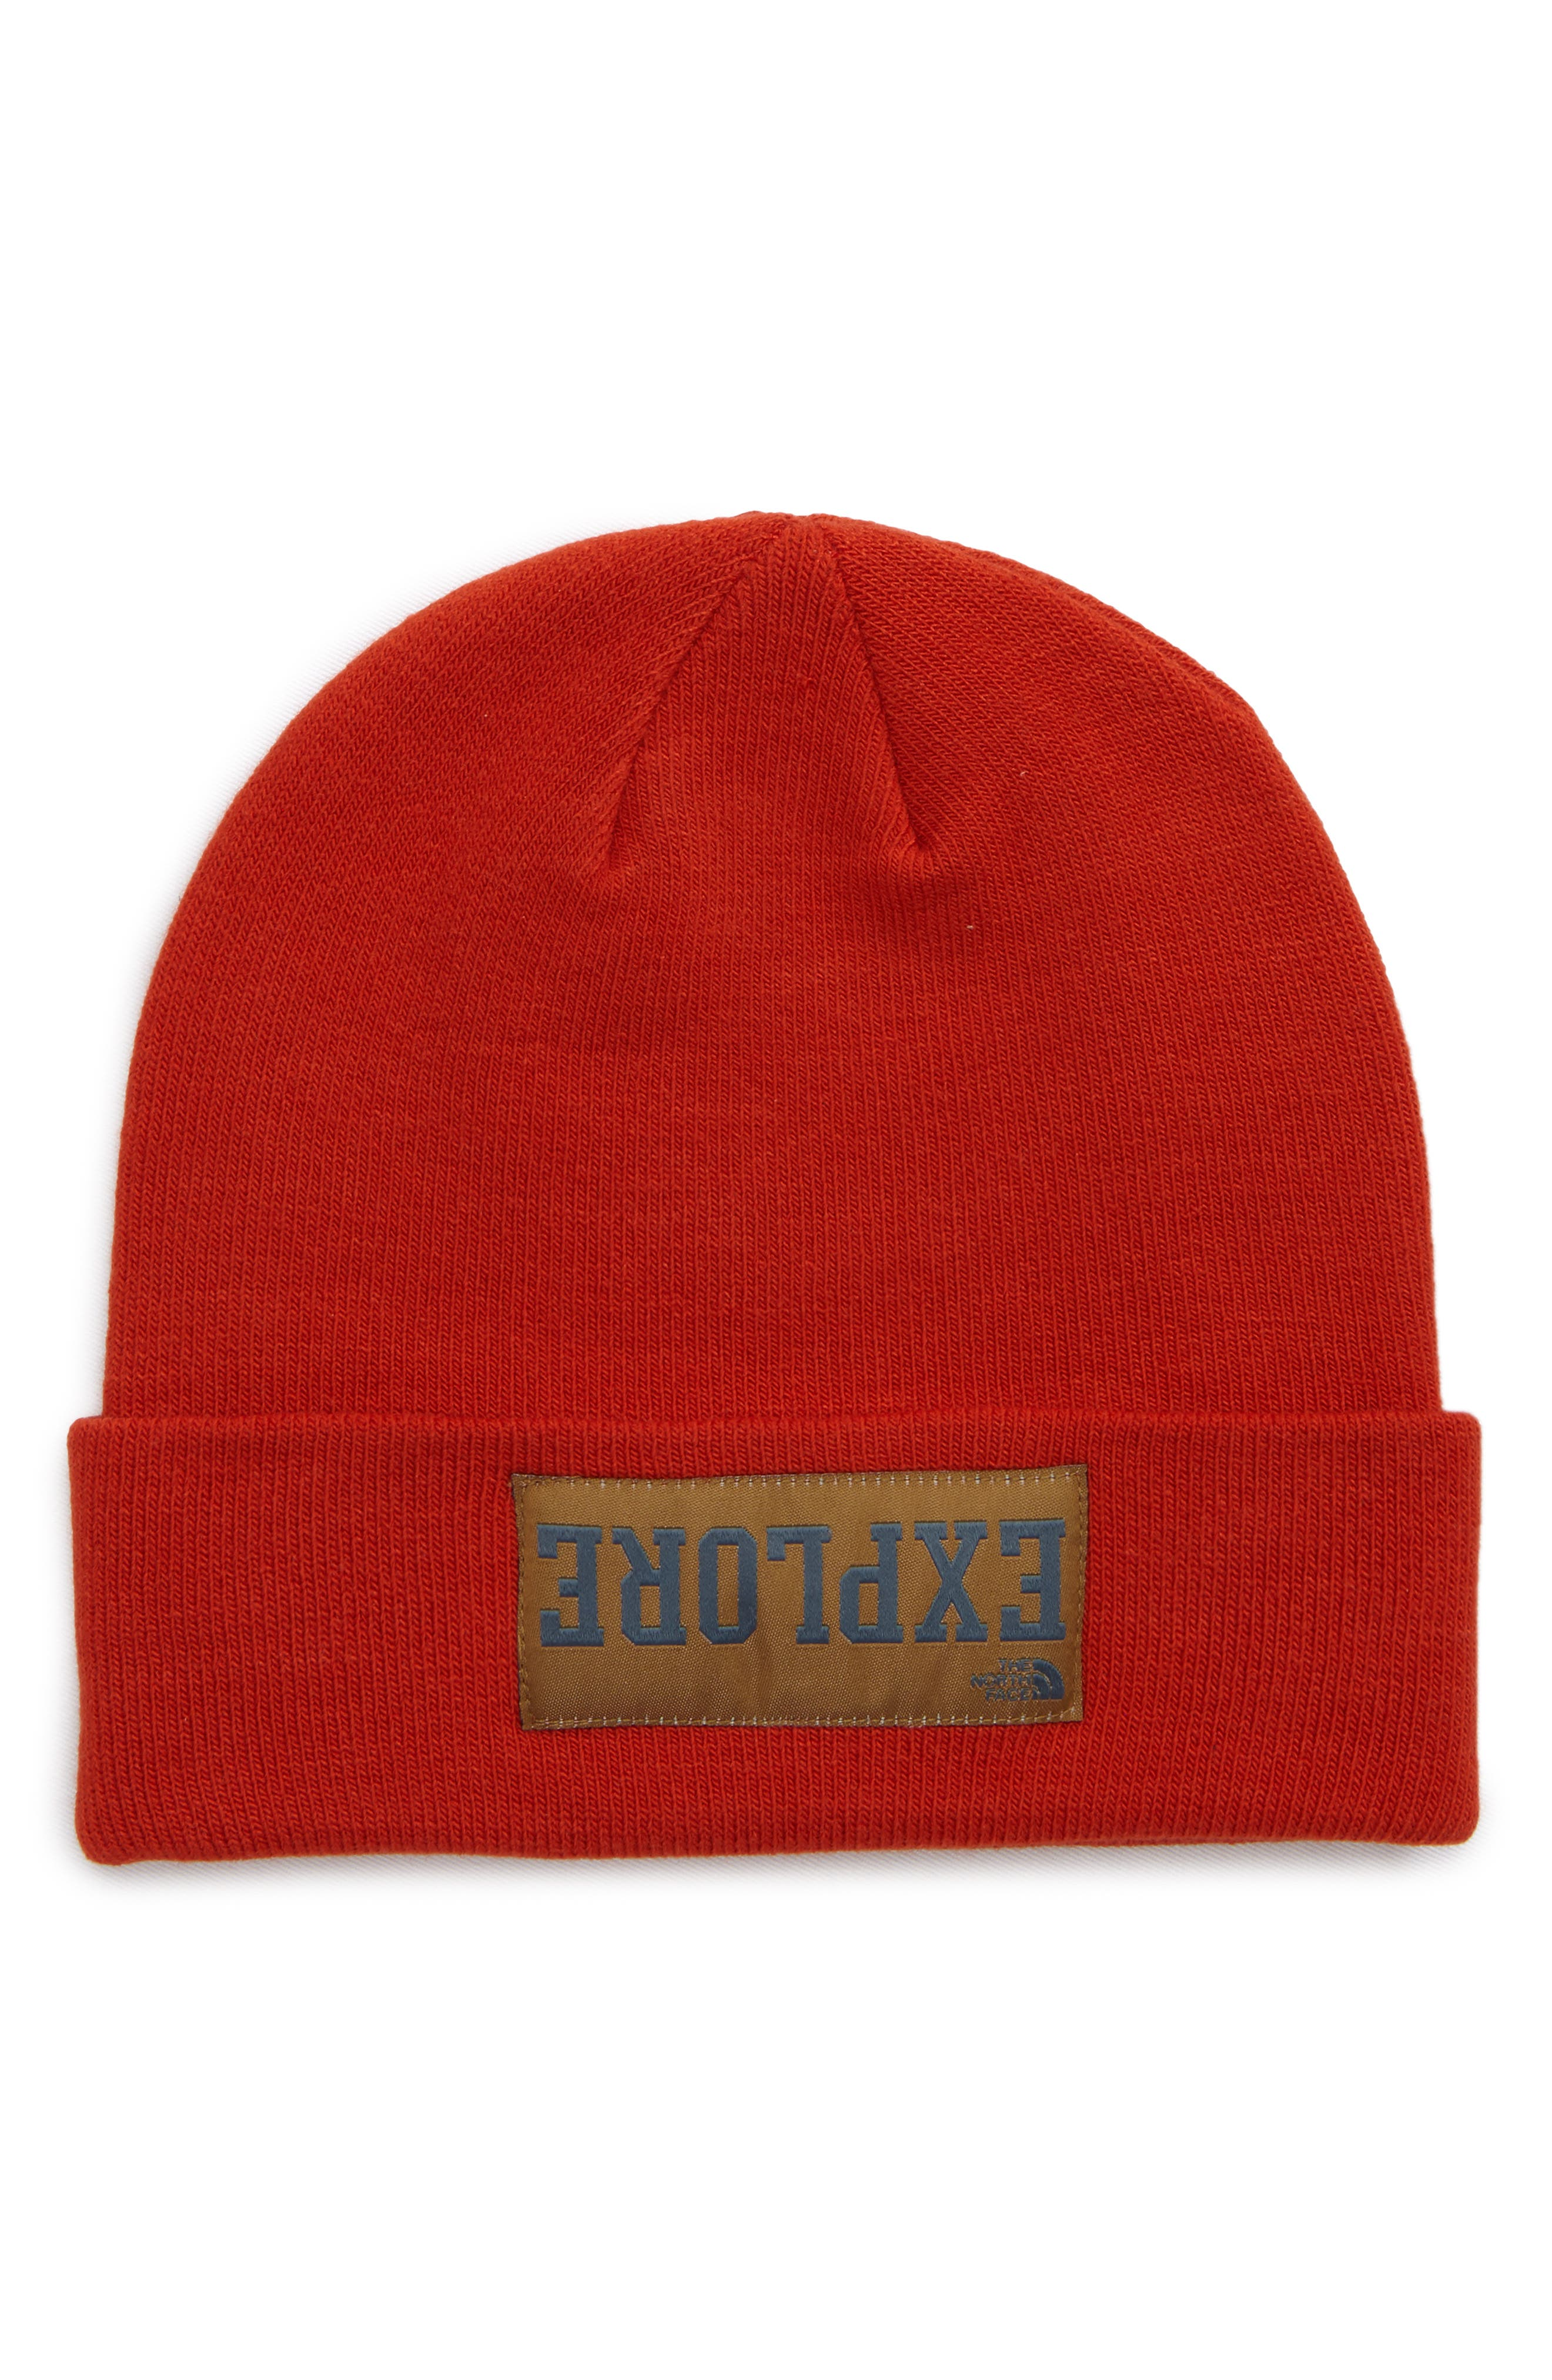 Main Image - The North Face Dock Worker Beanie (Big Boys)